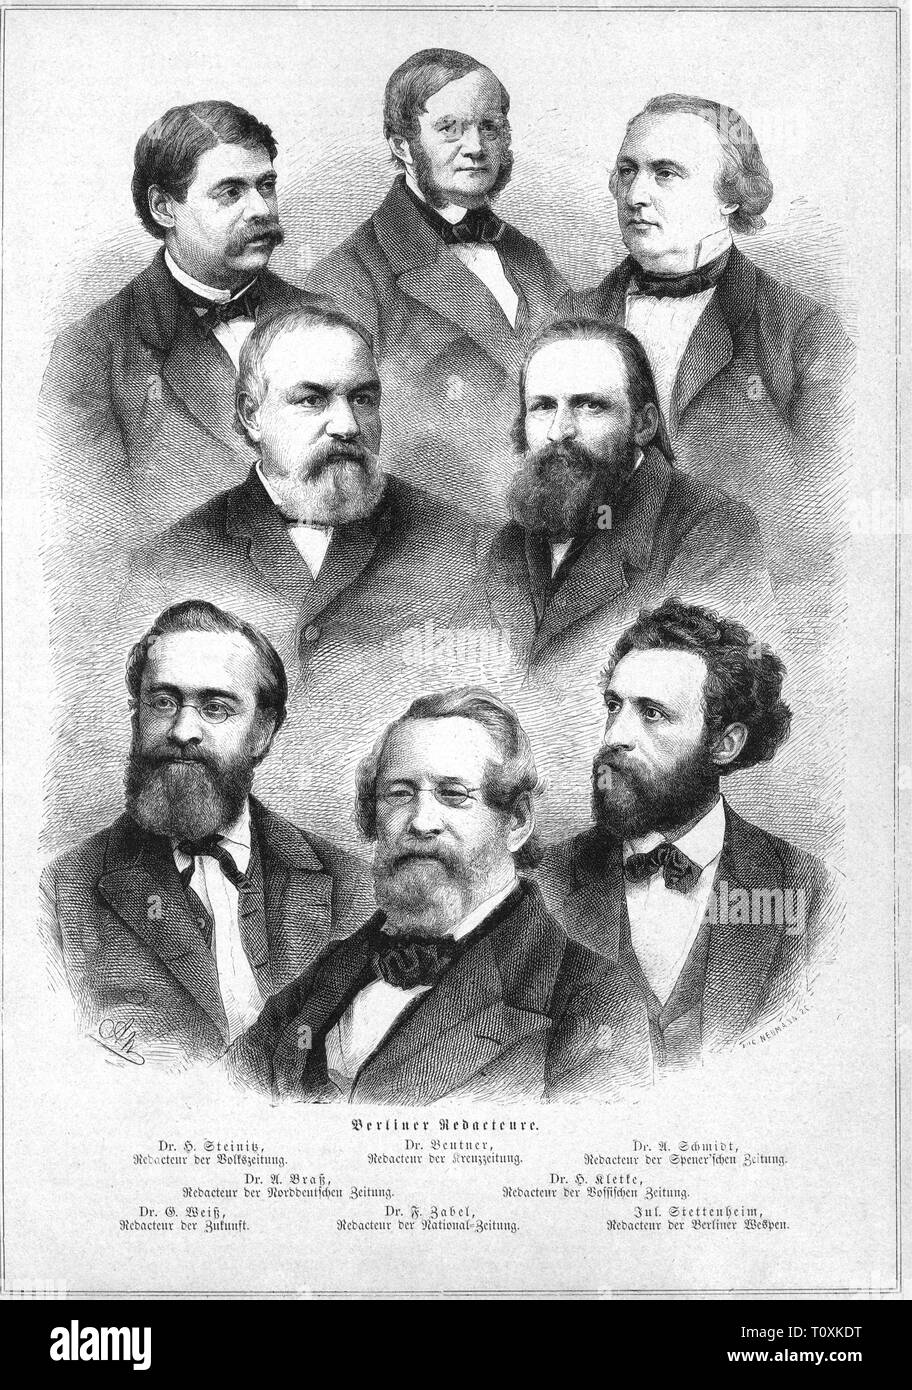 press / media, magazines, portraits of chief editors of Berlin newspapers, wood engraving, by Neumann, from: 'Die Gartenlaube', Leipzig, 1869, Artist's Copyright has not to be cleared - Stock Image